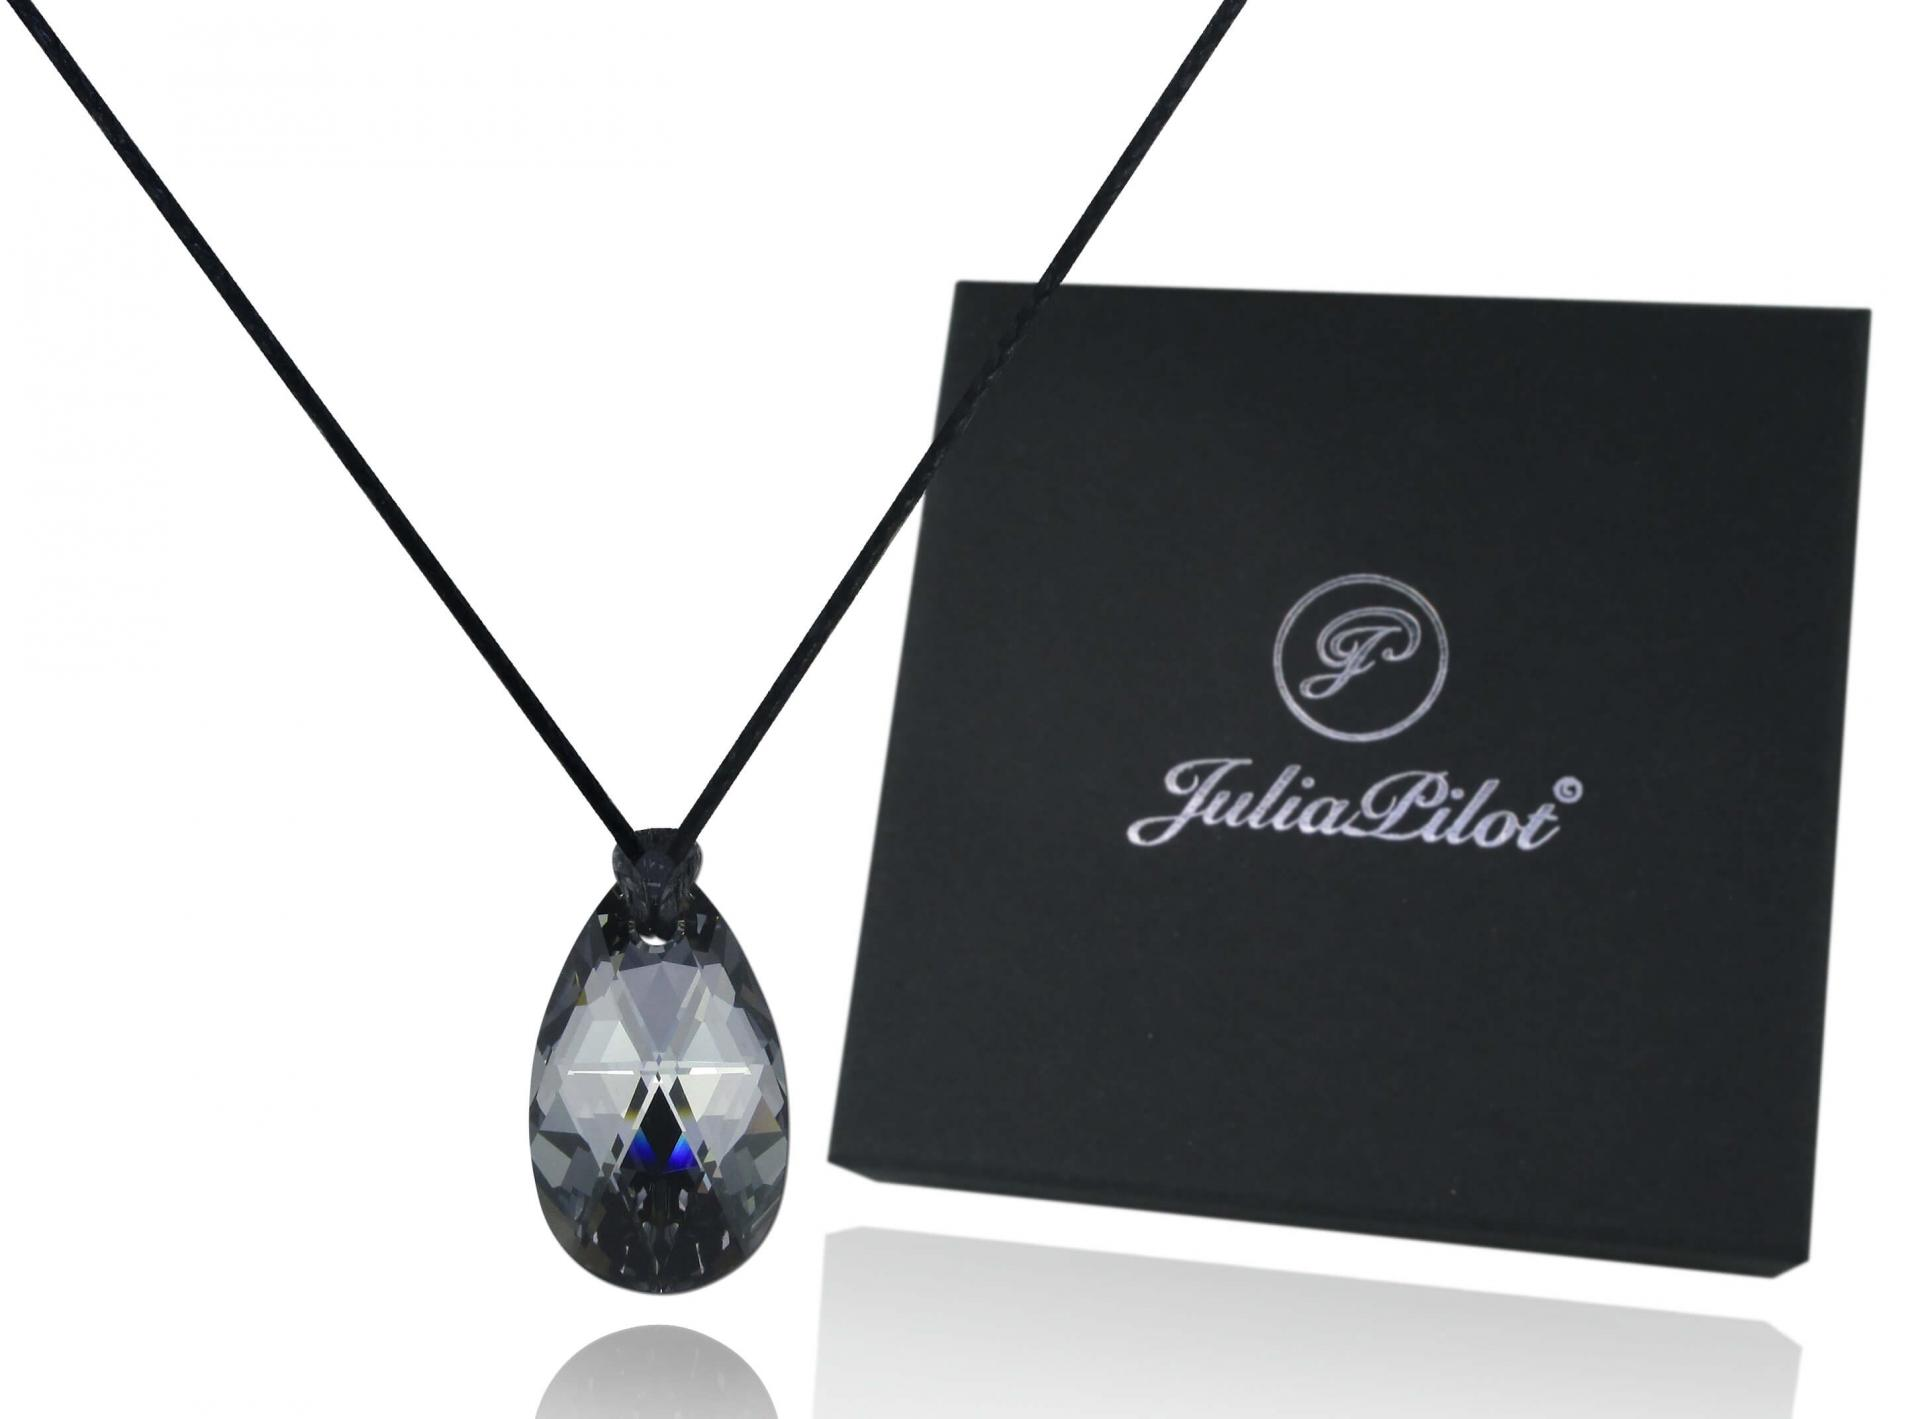 Nature dream silver night pendentif juliapilot coffret